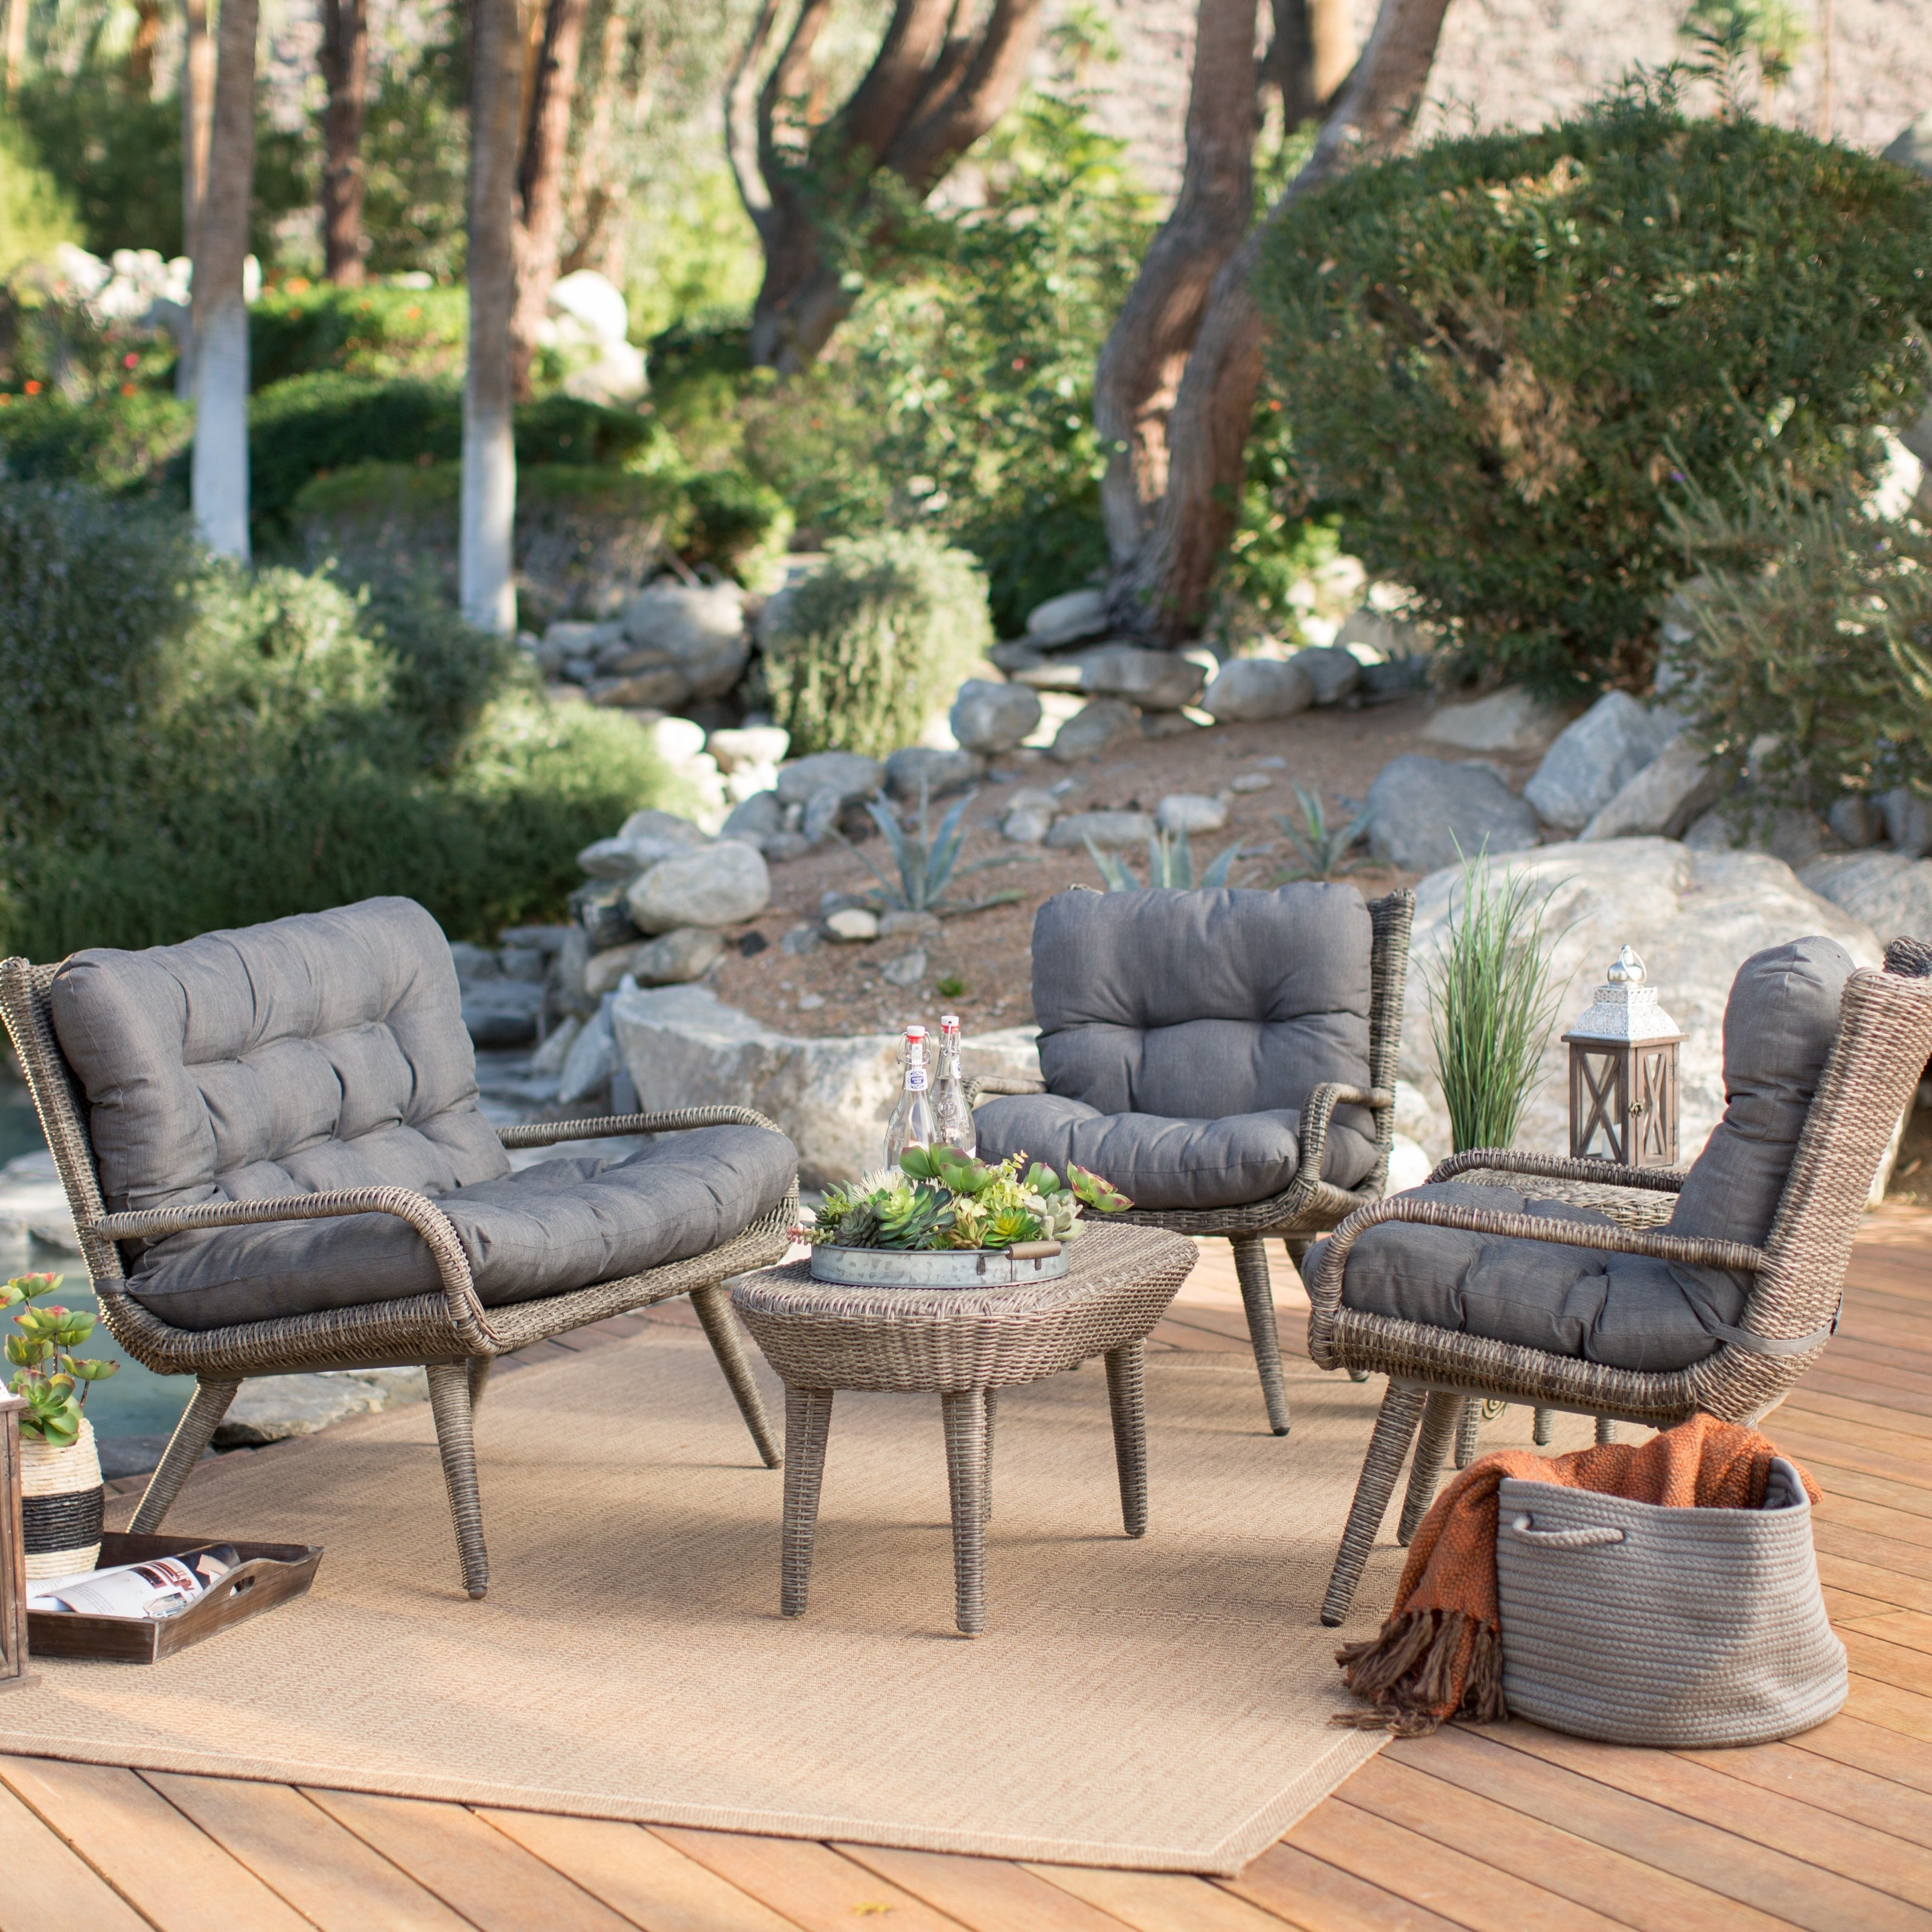 Furniture: Exciting Outdoor Furniture With Gray Cushions On Beige For Most Current Gray Patio Conversation Sets (View 2 of 15)